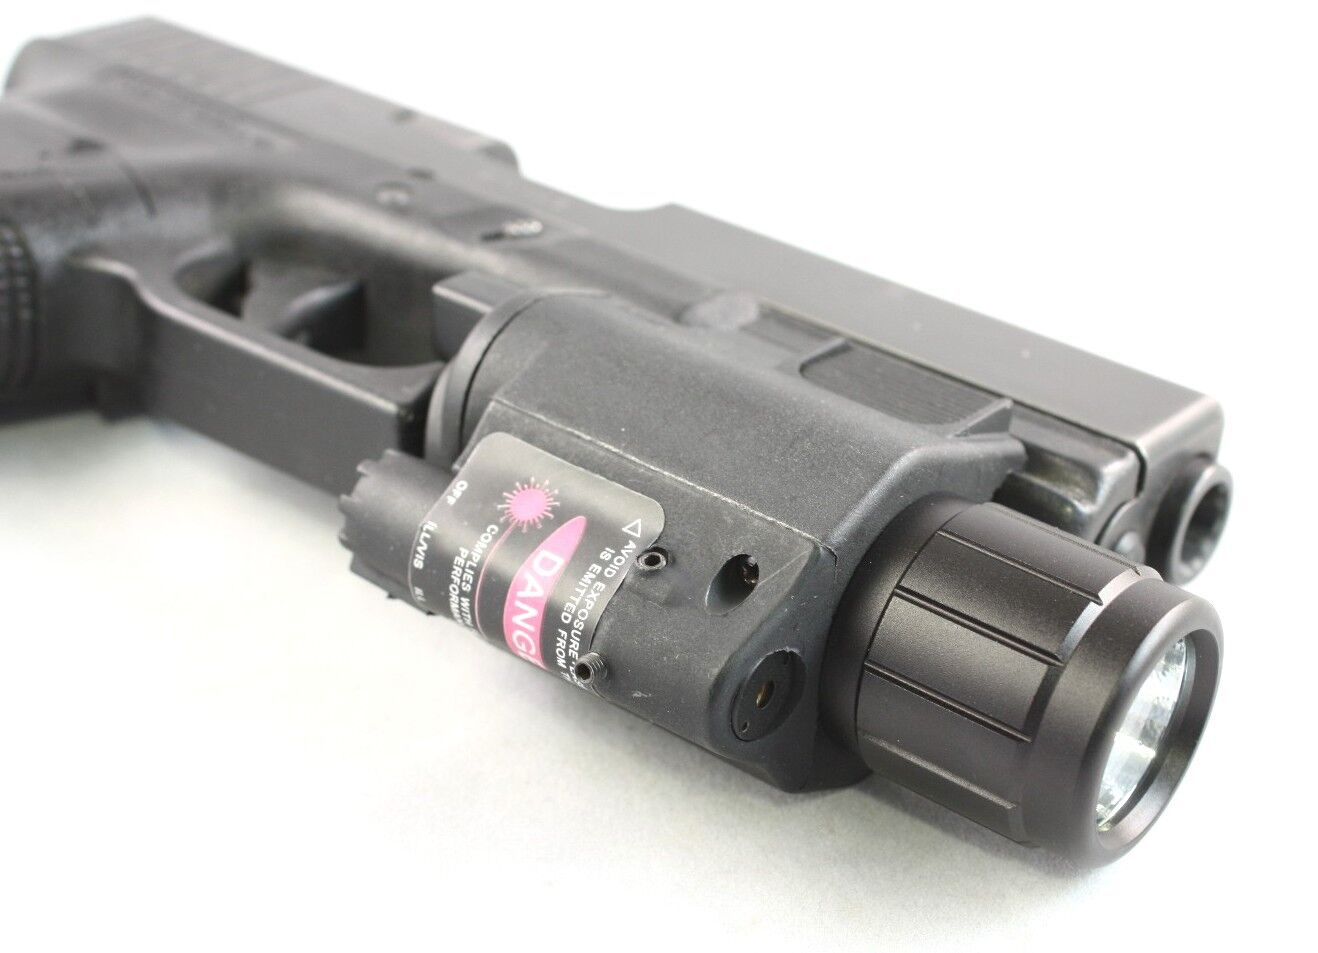 Tactical Red Laser Sight Amp Cree Led Light Combo Rifle